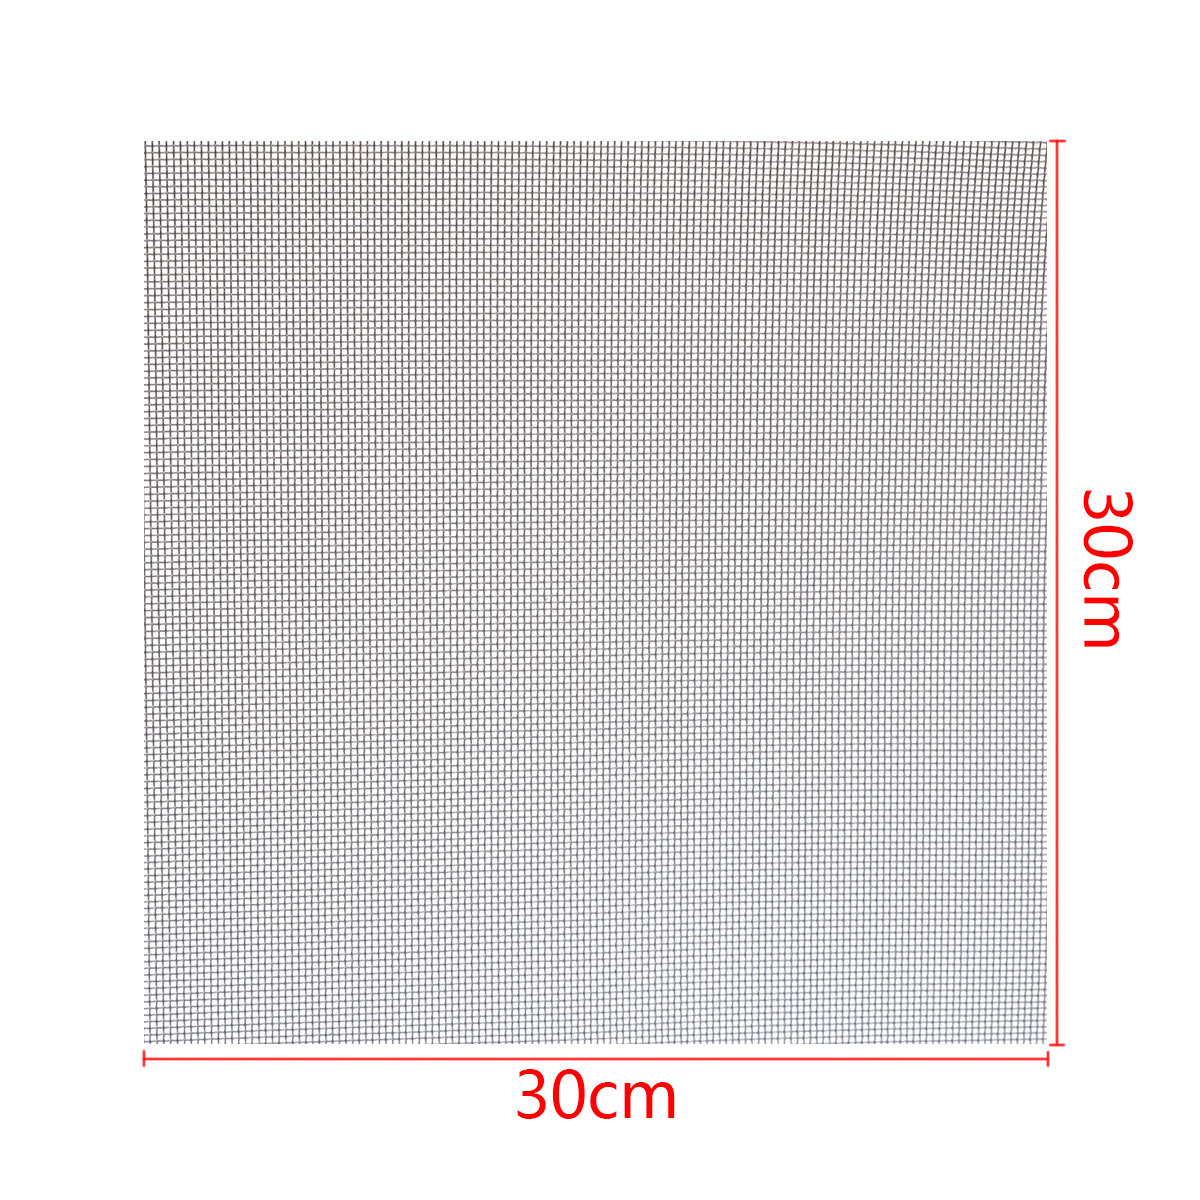 New 60 Mesh Woven Wire Cloth Screen Filtration Stainless Steel with High Temperature Resistance 30x30cm